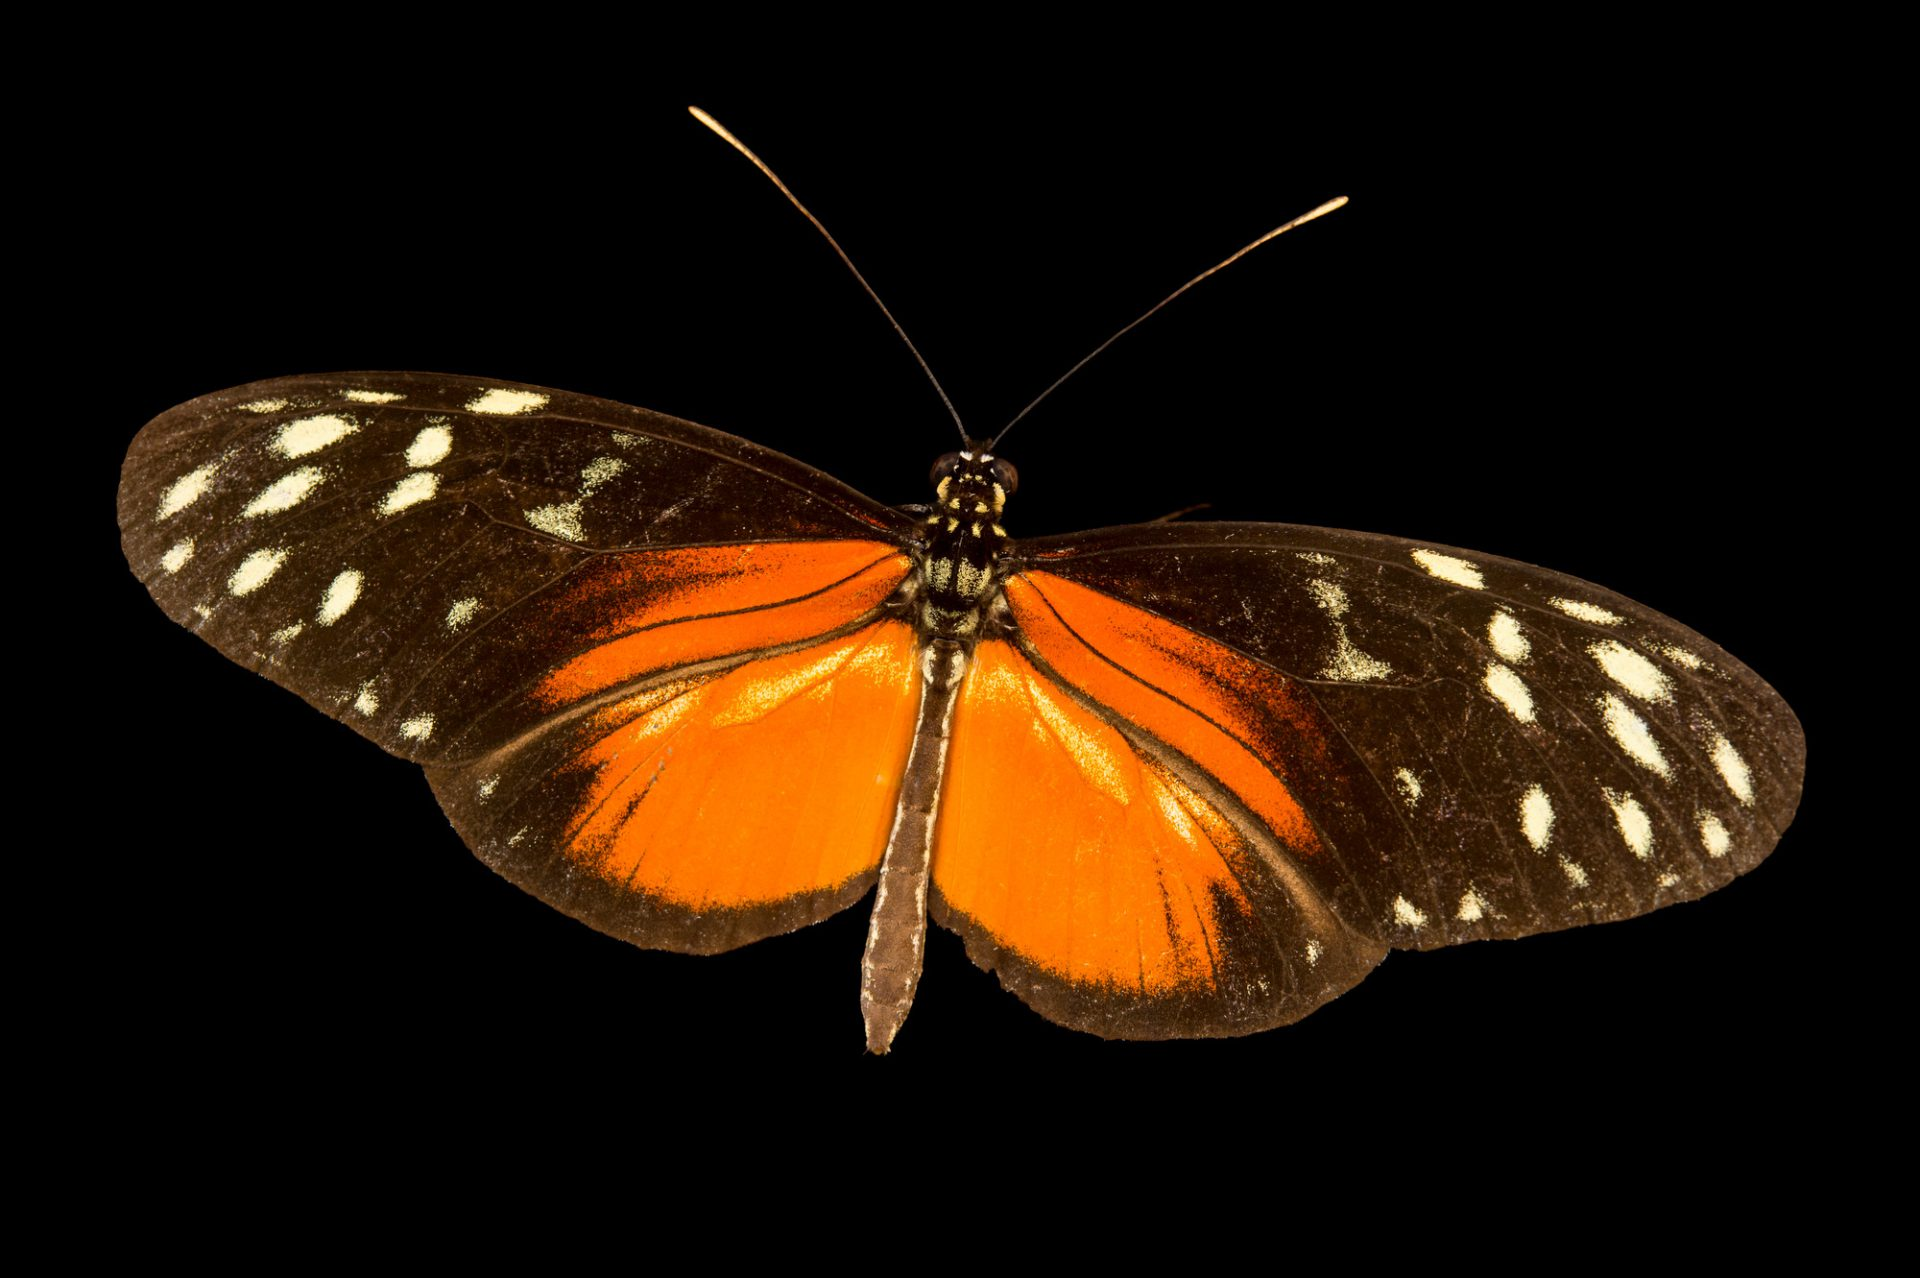 Spotted longwing (Heliconius hecale zuleika) in Gamboa, Panama.